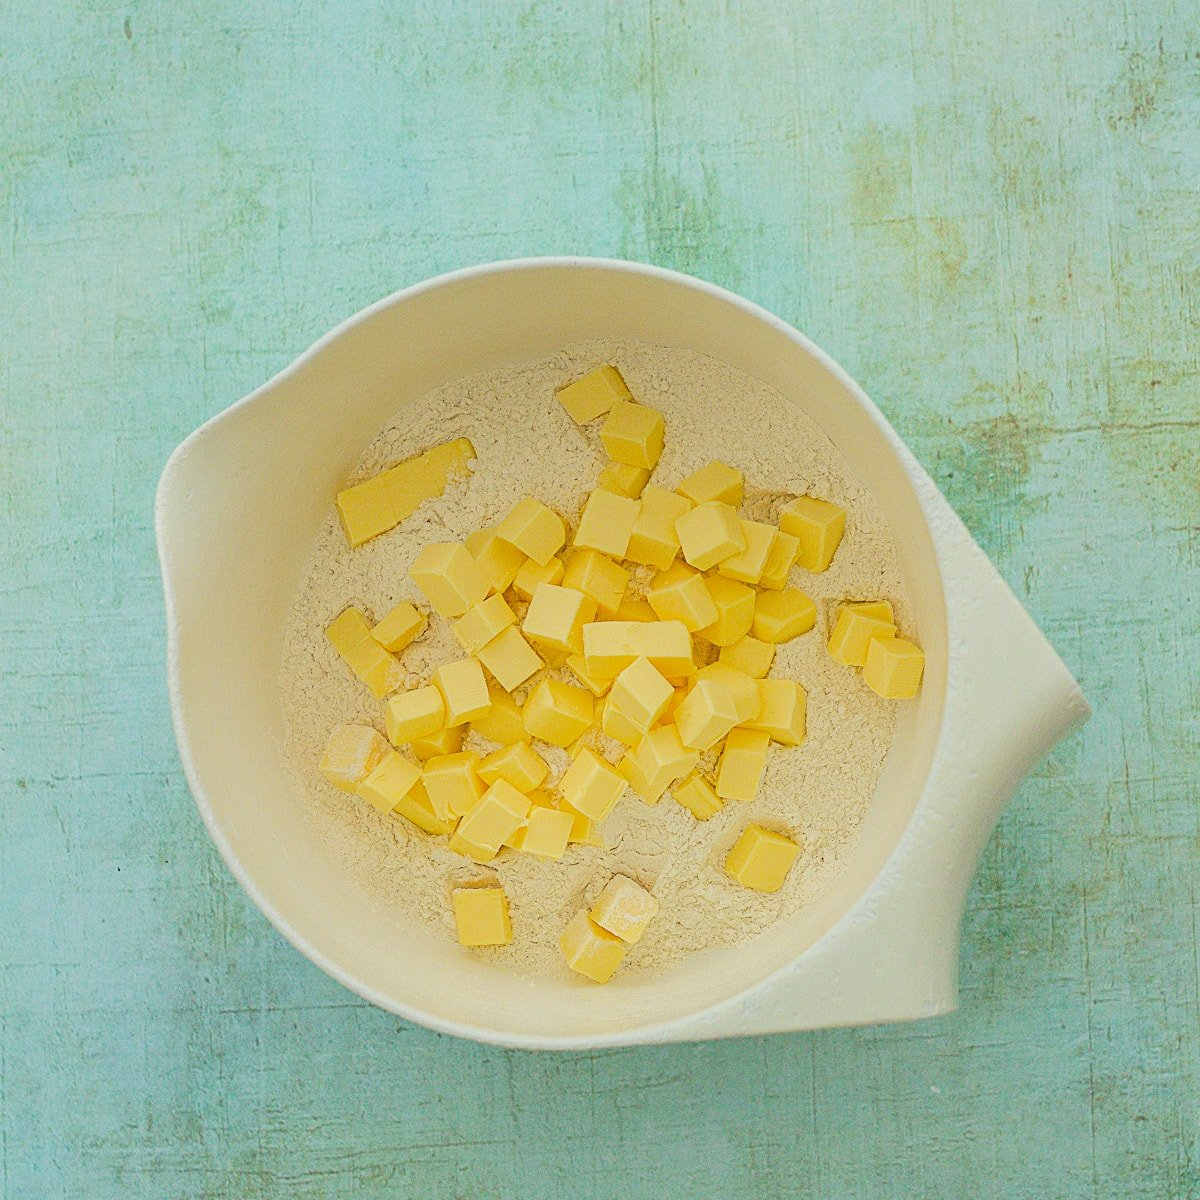 Flour and cubed butter in a bowl